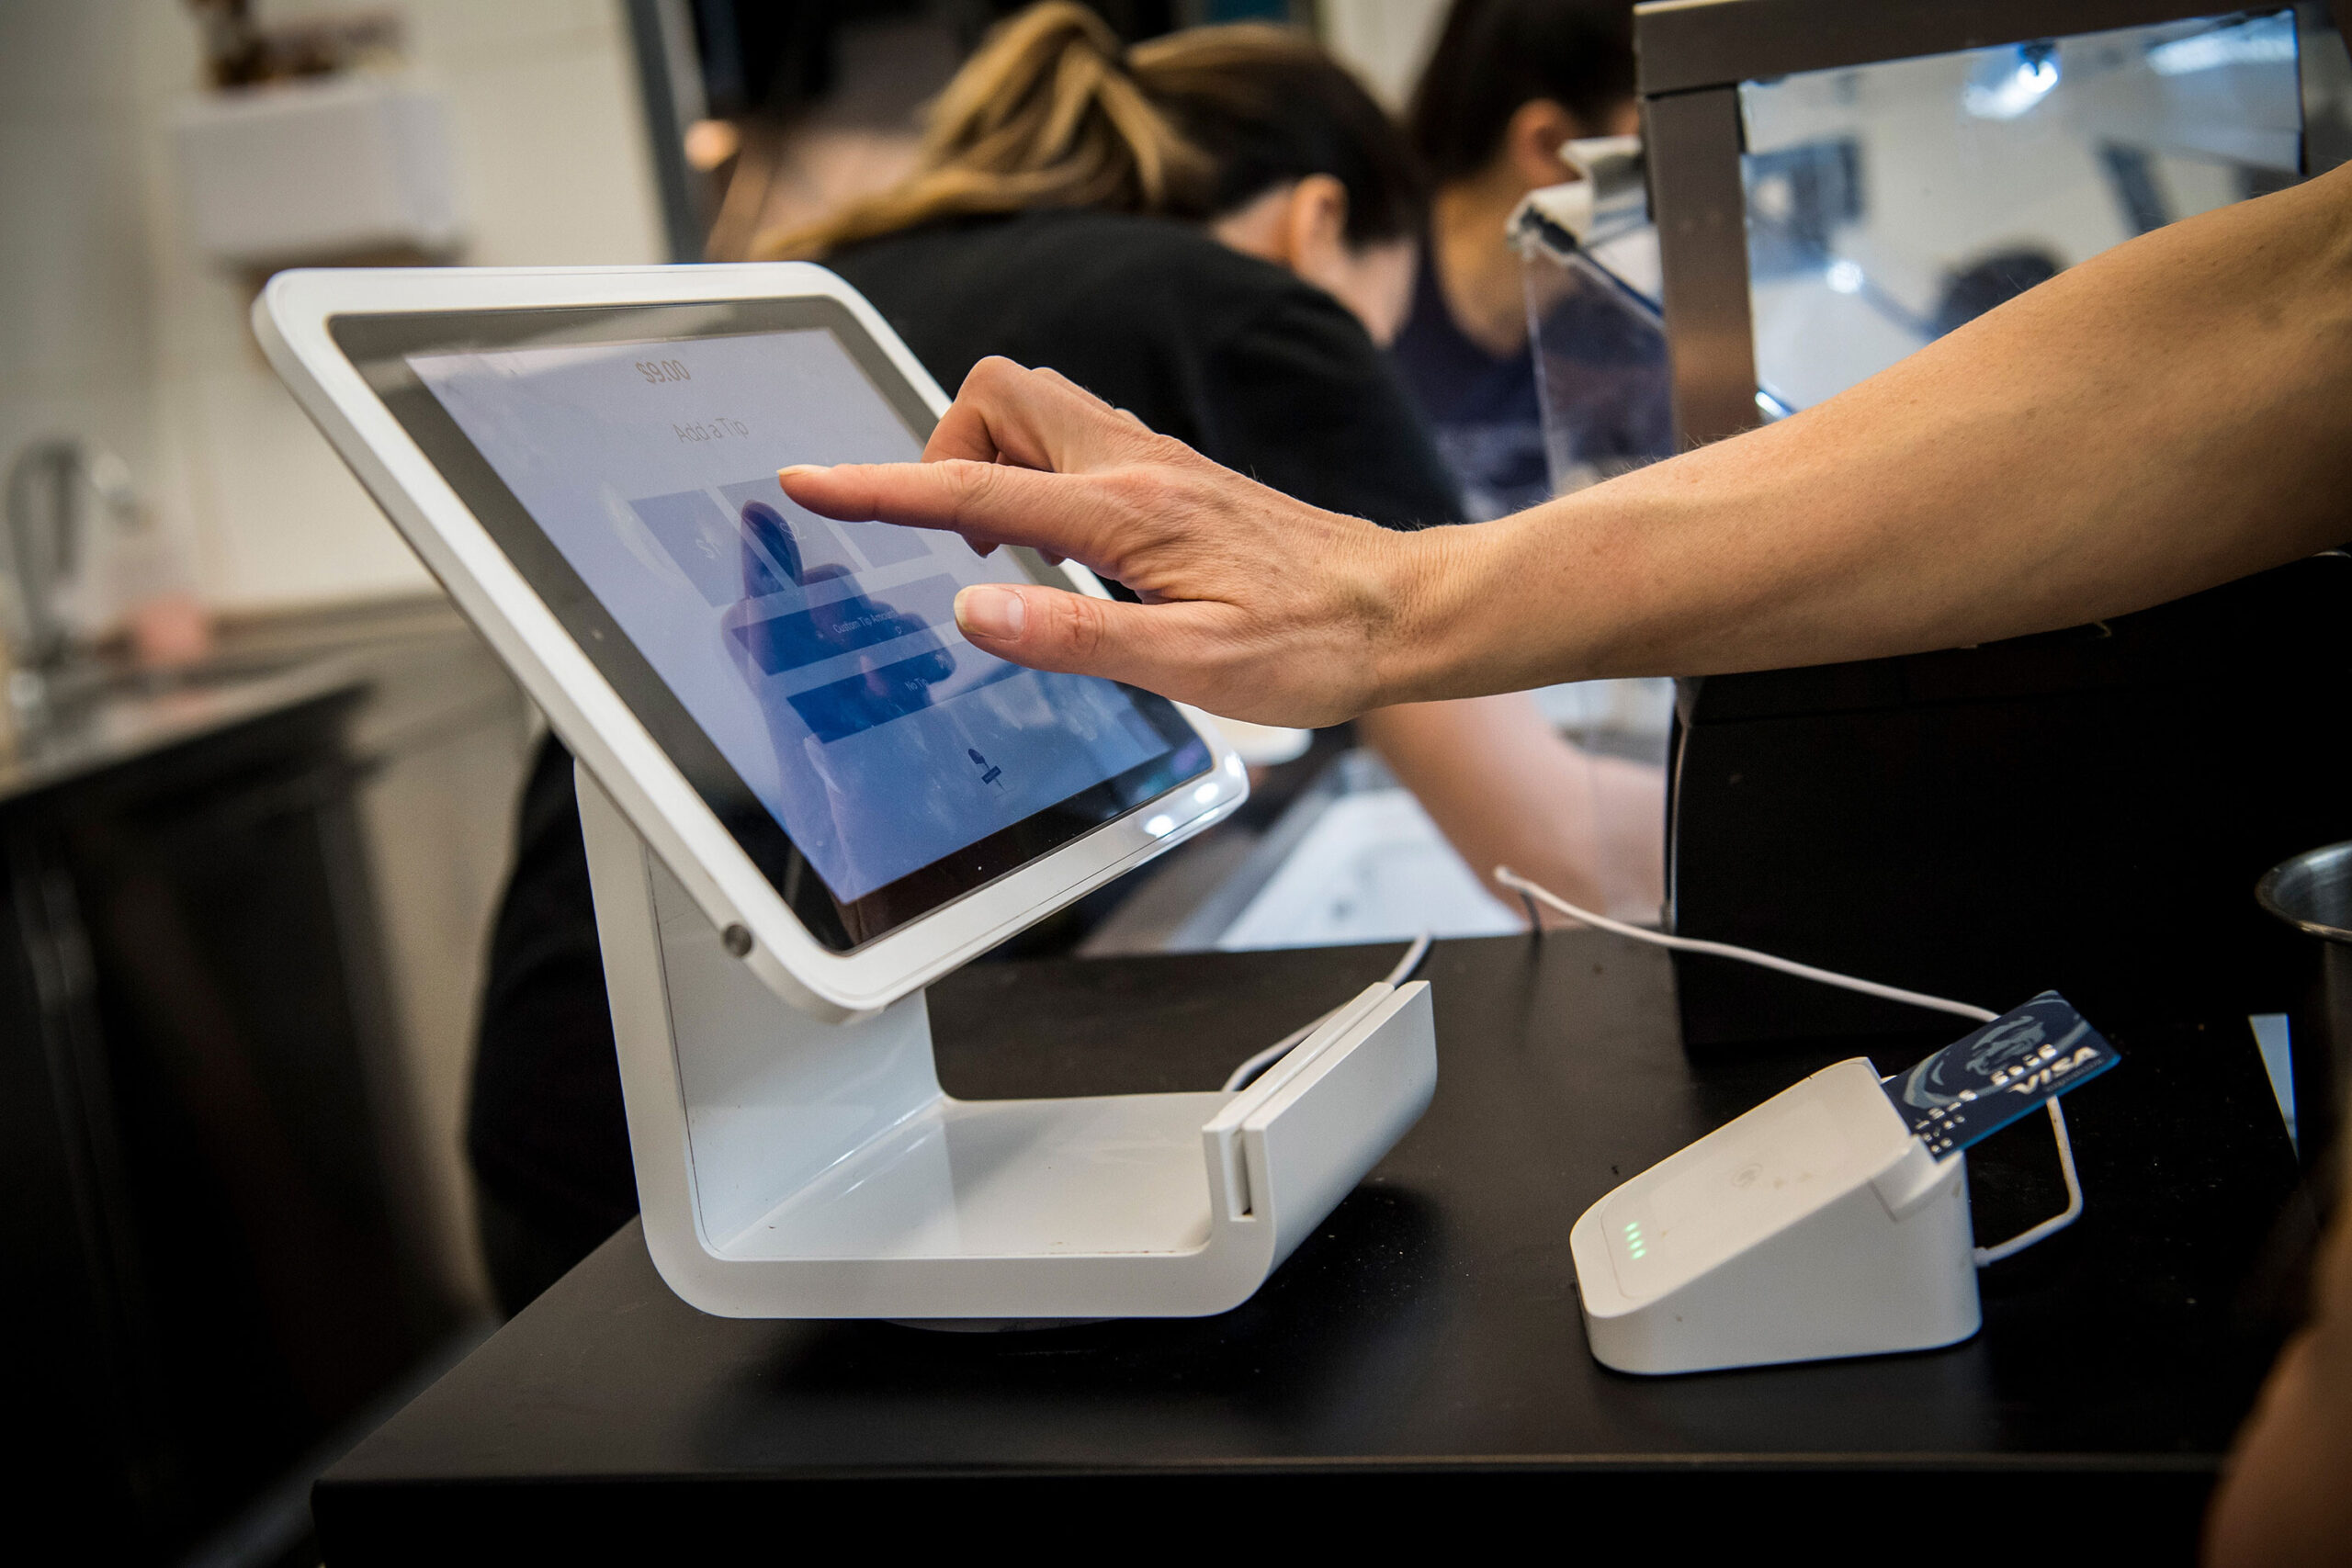 <i>David Paul Morris/Bloomberg via Getty Images</i><br/>Square anounced Sunday that it's buying Afterpay for $29 billion. A customer uses a Square Inc. device to make a payment in San Francisco